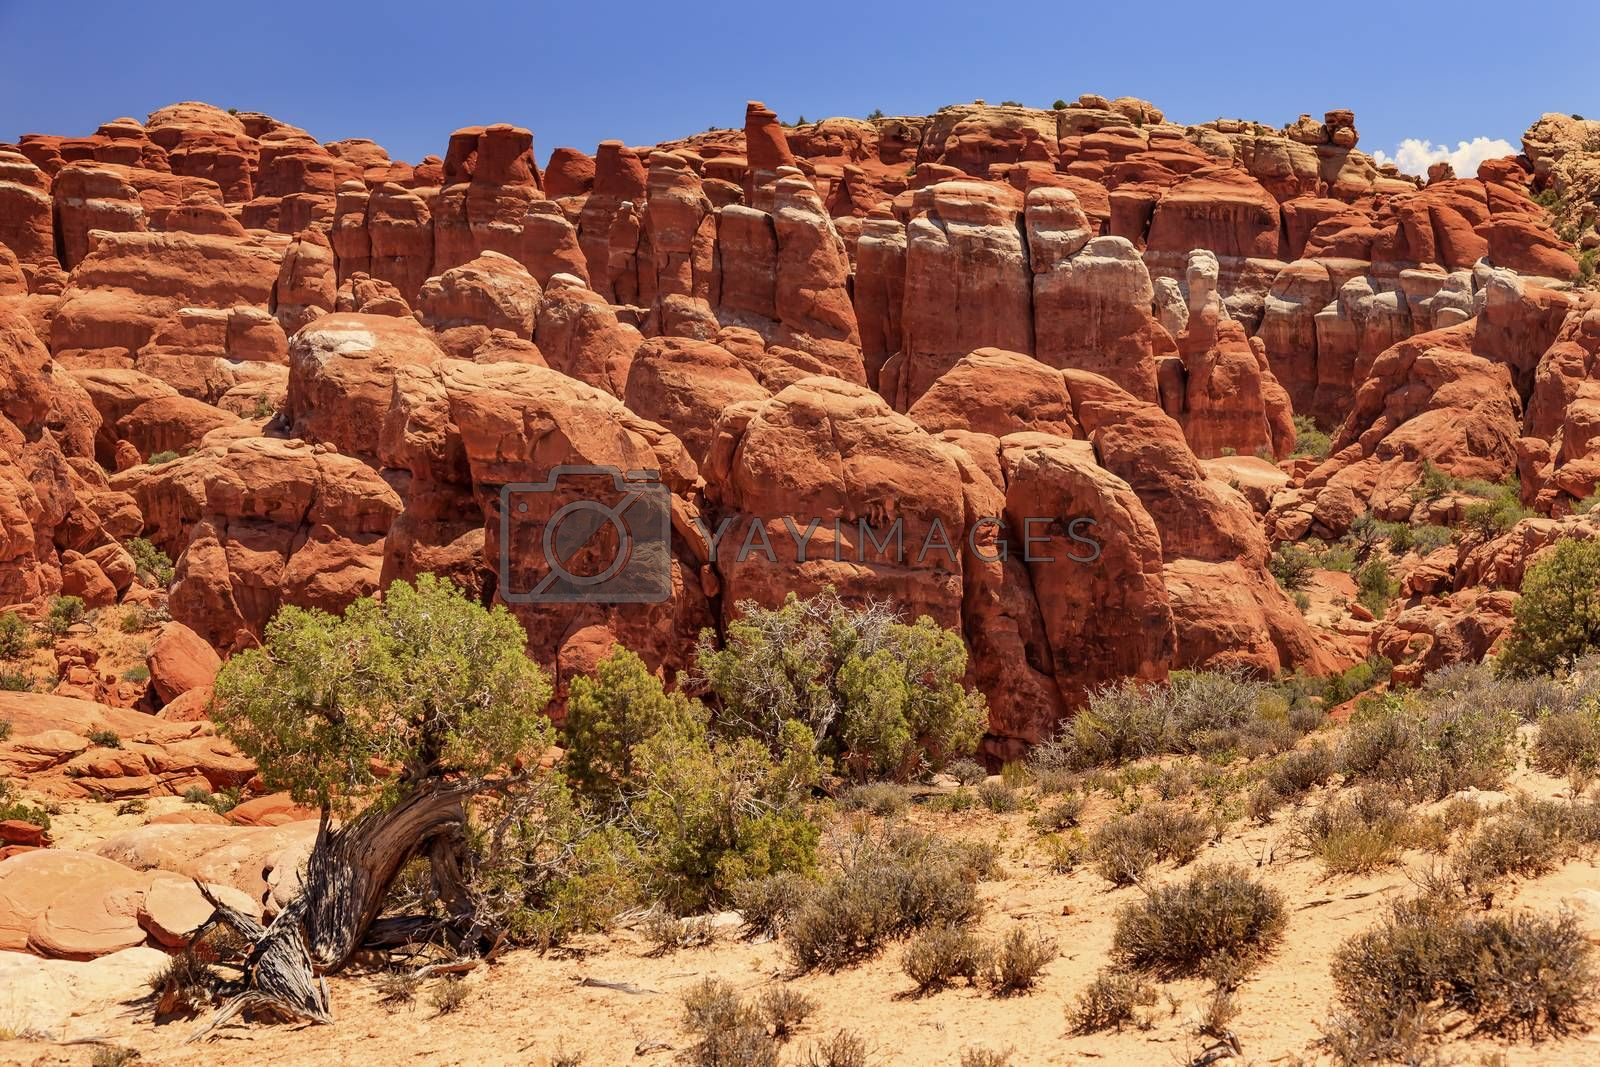 Royalty free image of Fiery Furnace Hoodoos Rock Canyon Arches National Park Moab Utah by bill_perry